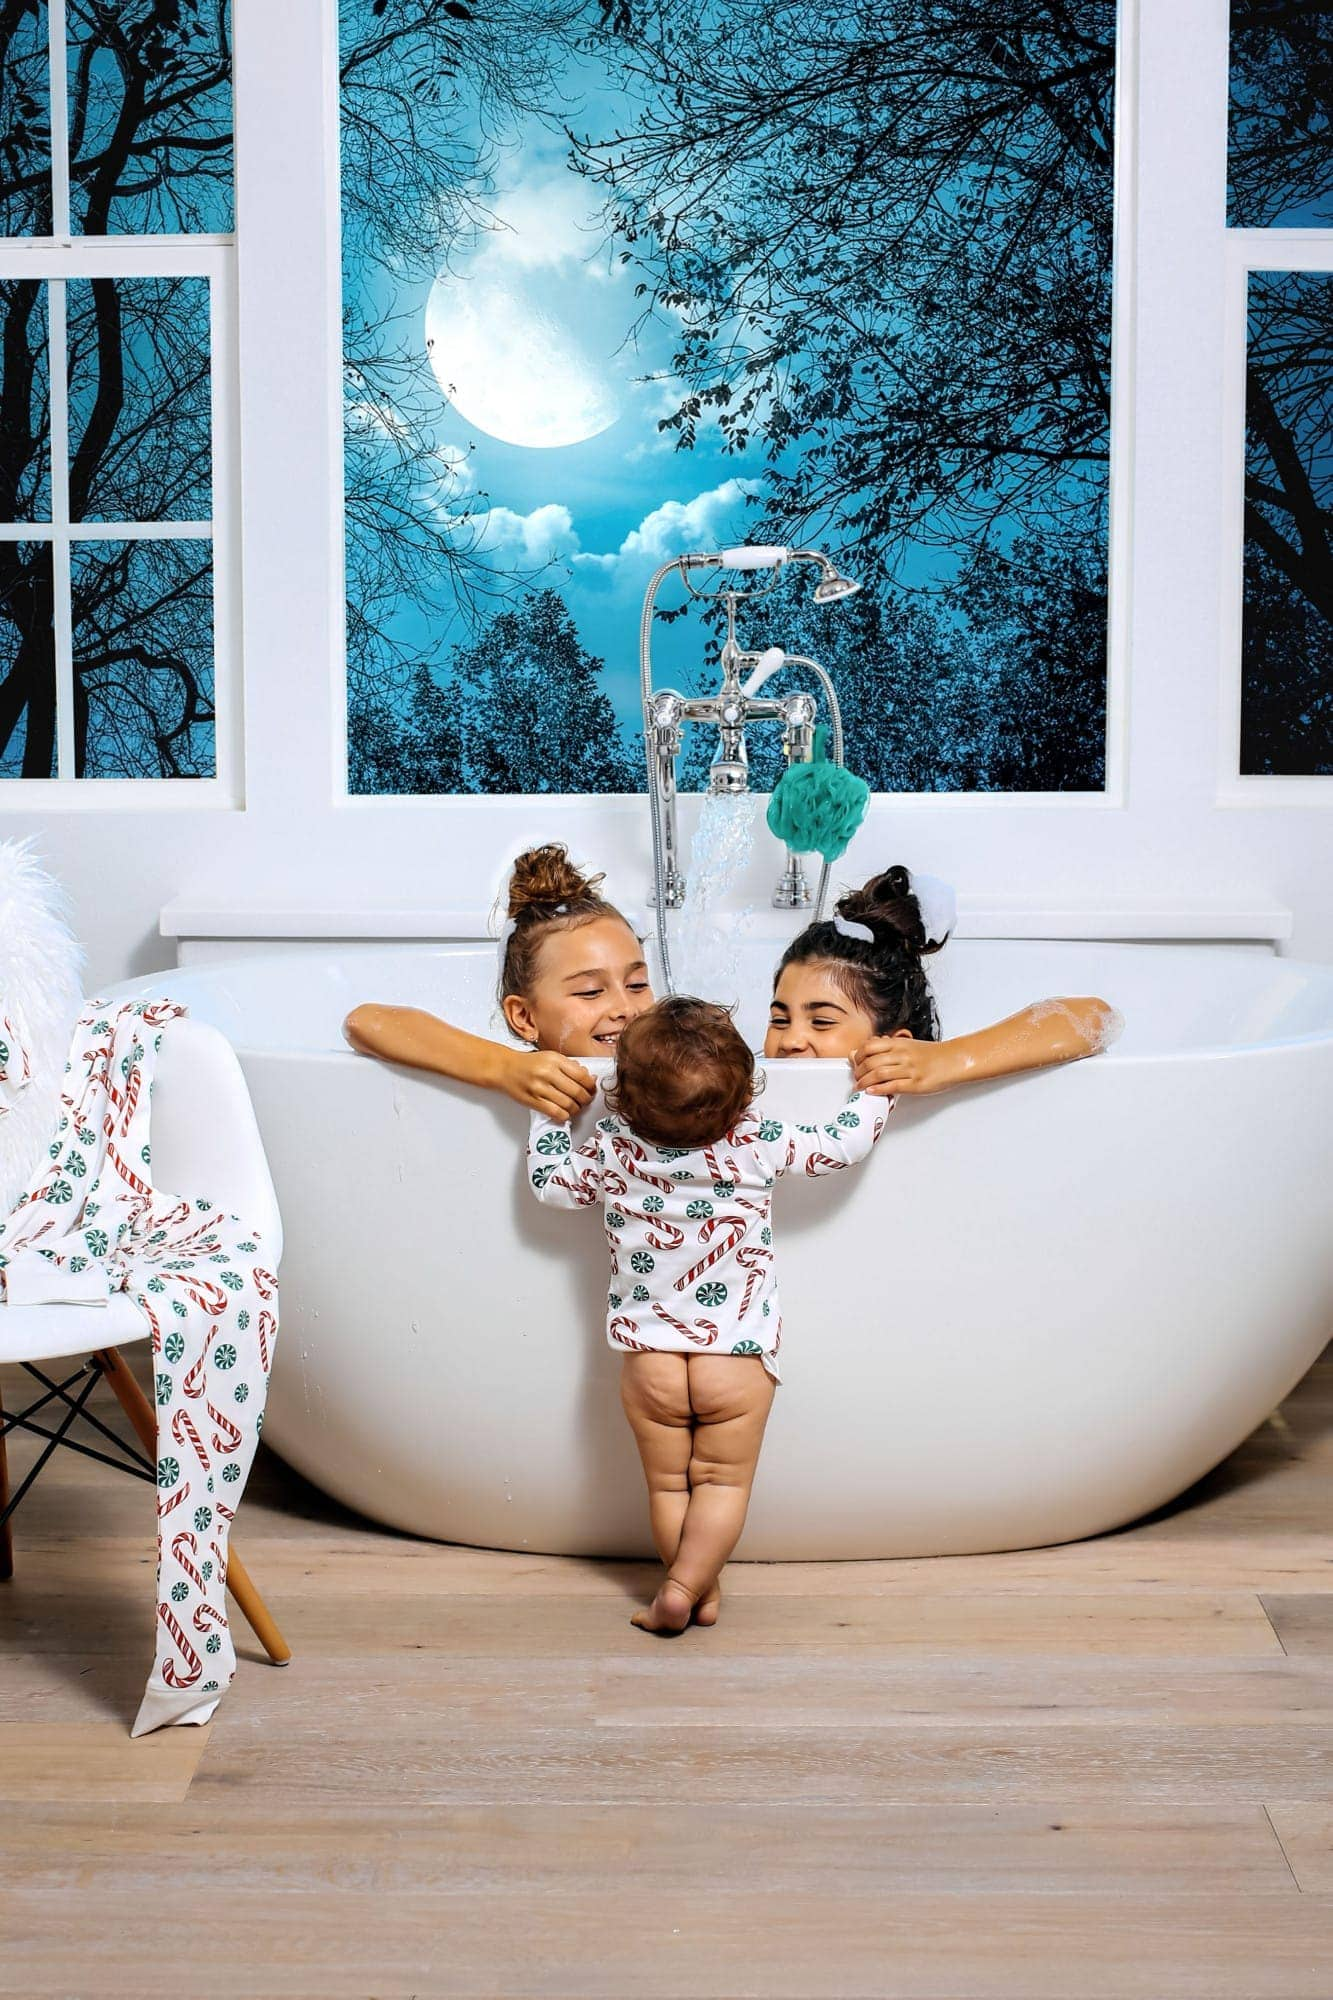 girls in bathtub with baby standing